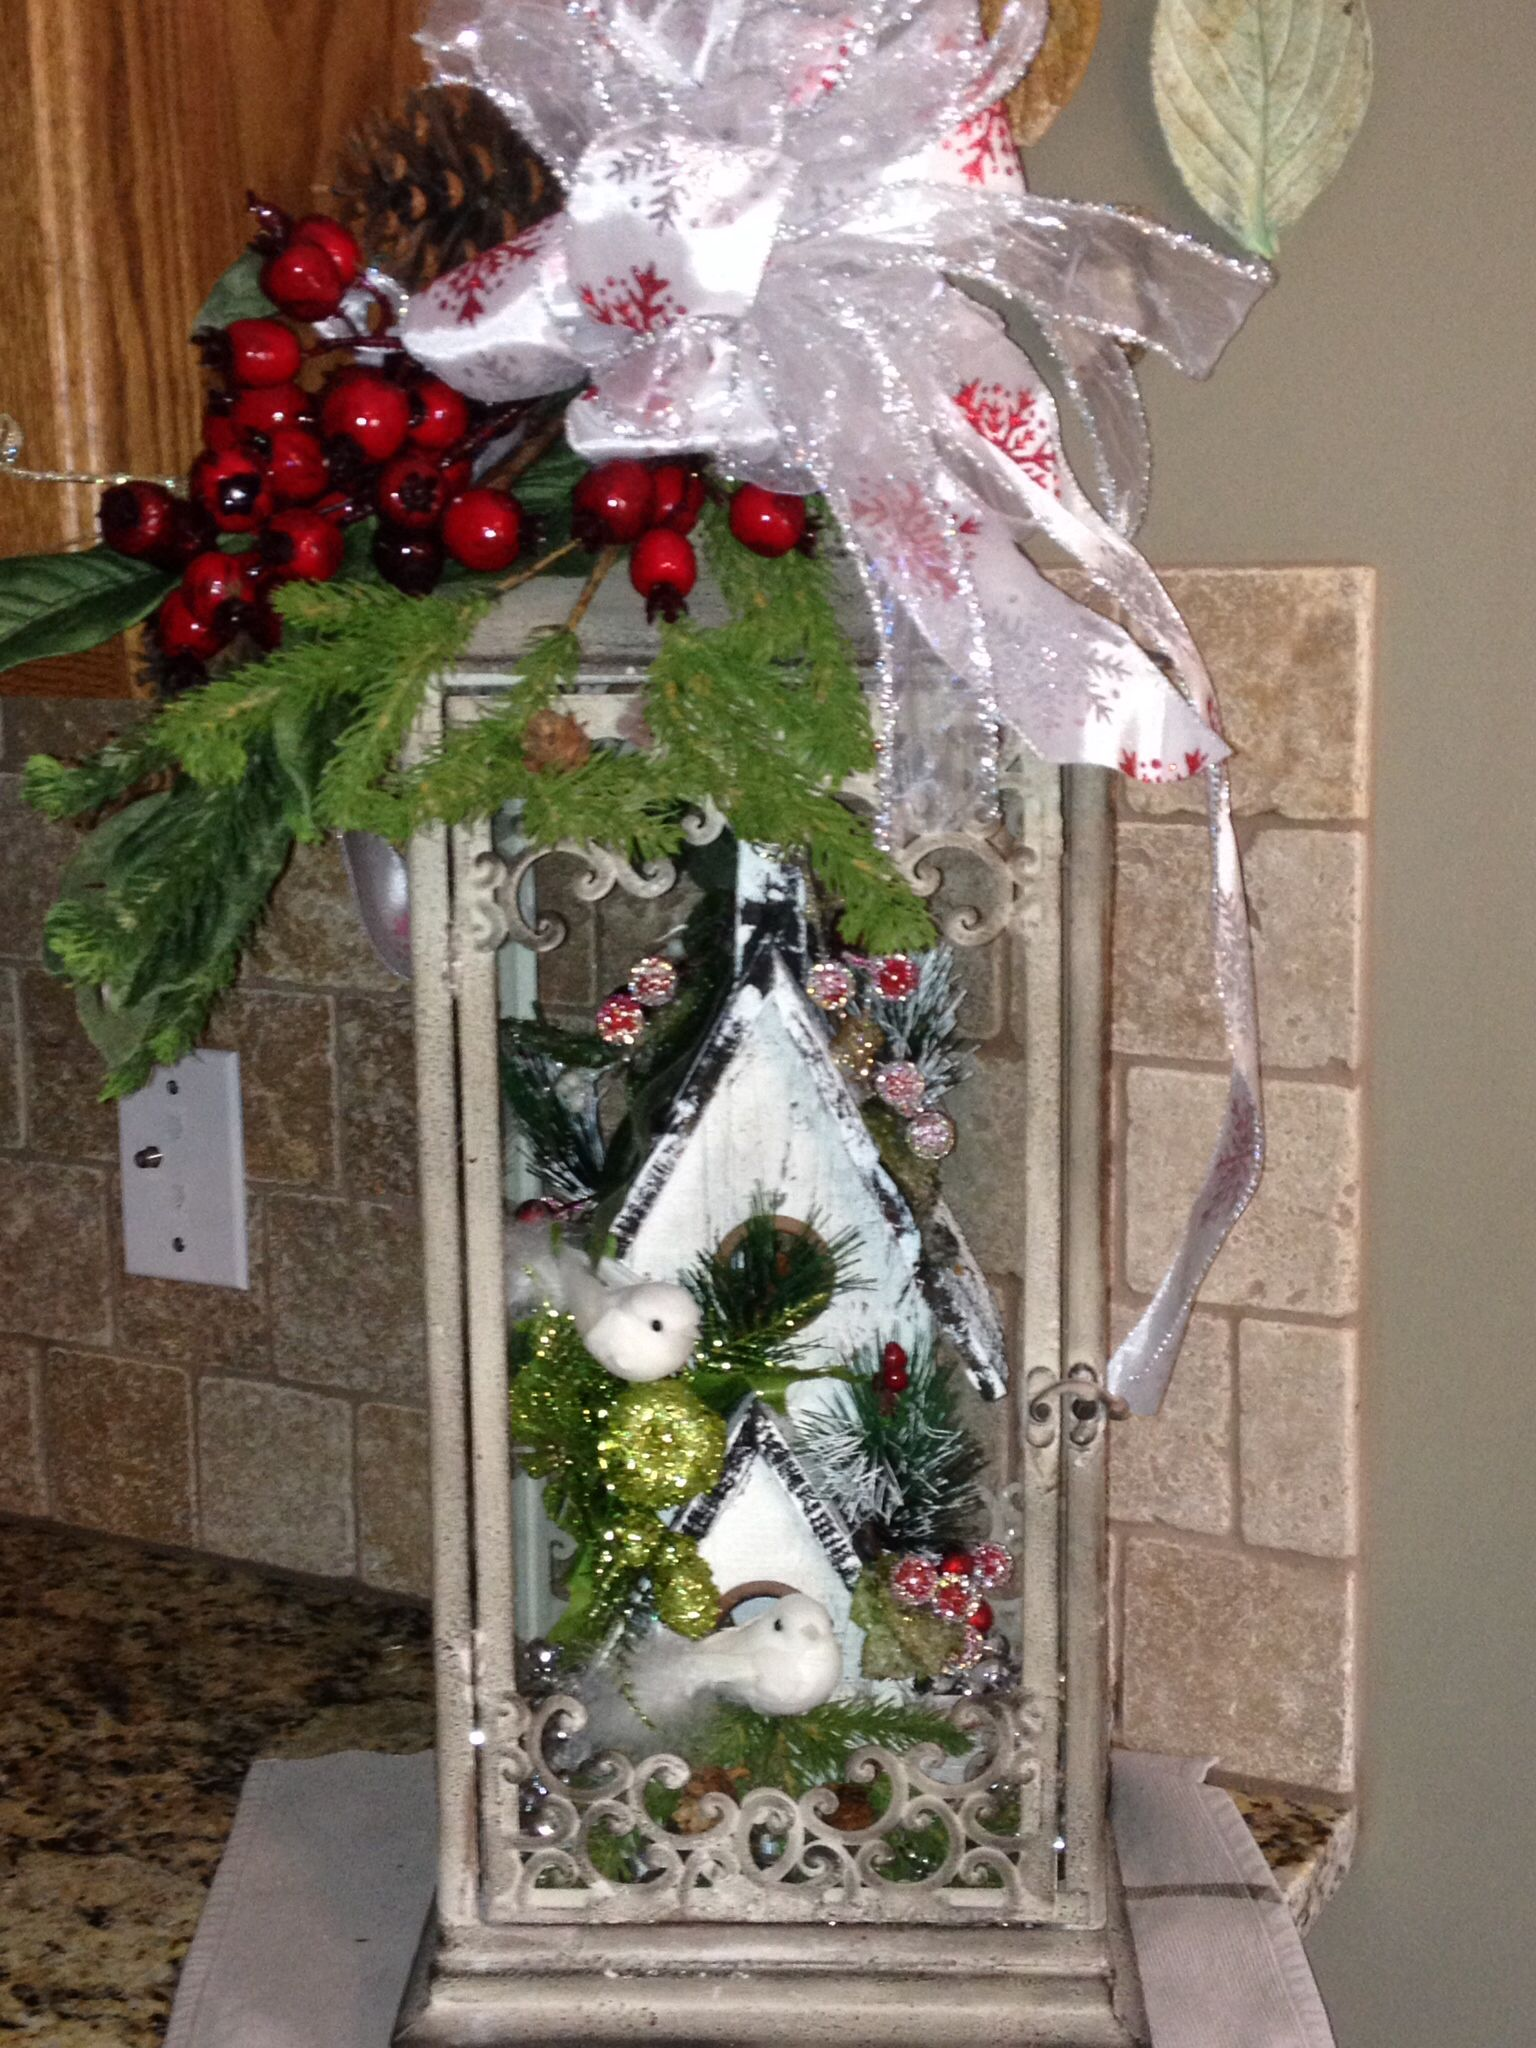 Christmas lantern christmas ideas decorations pinterest for Images of lanterns decorated for christmas